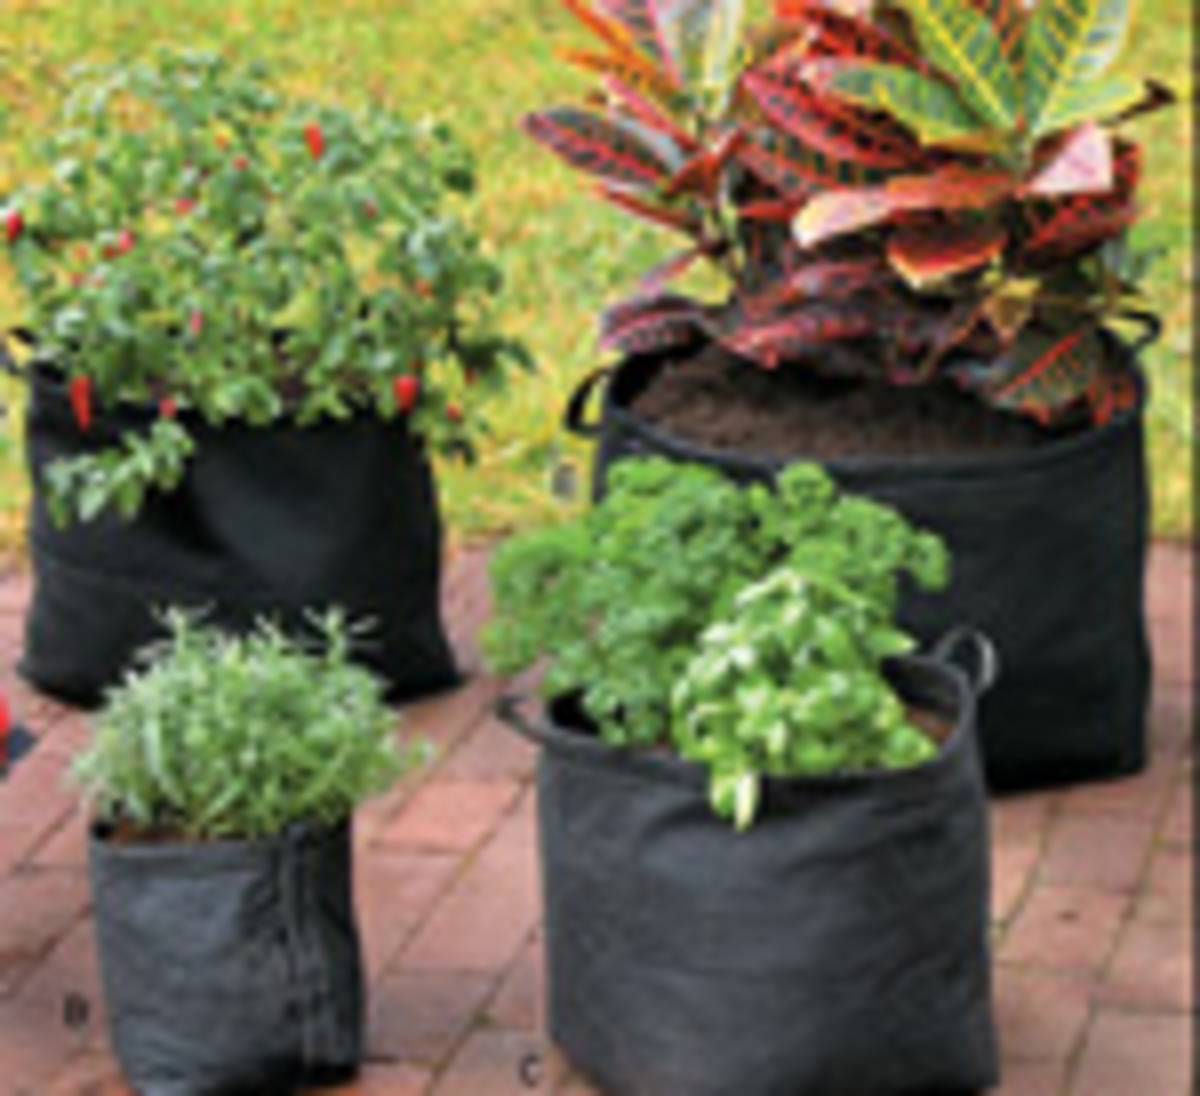 Grow Bags from Lee Valley Tools